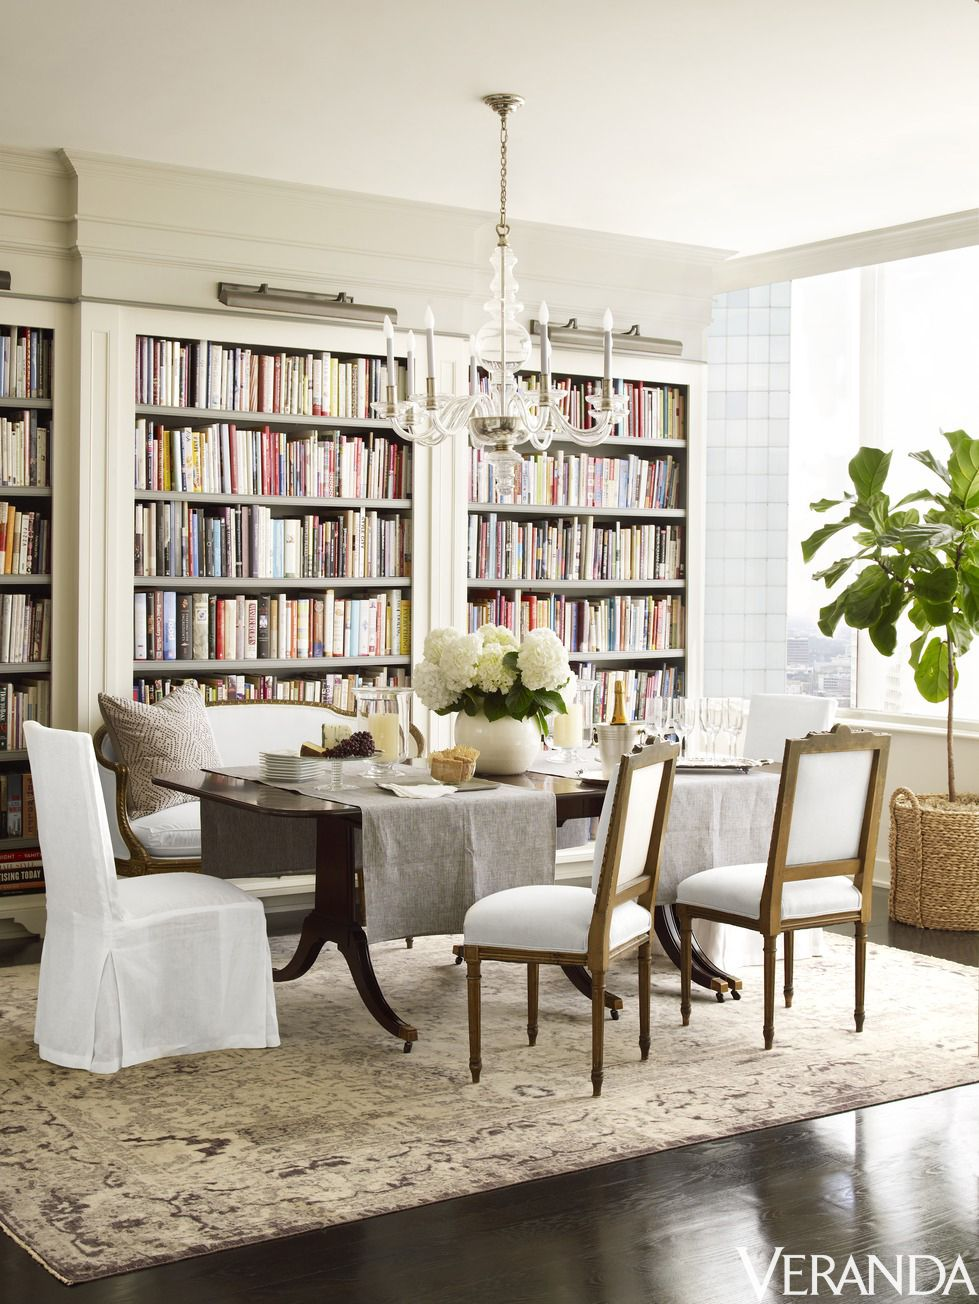 Exceptional Bookcases Line A Wall In A Texas Penthouseu0027s Elegant Dining Room.